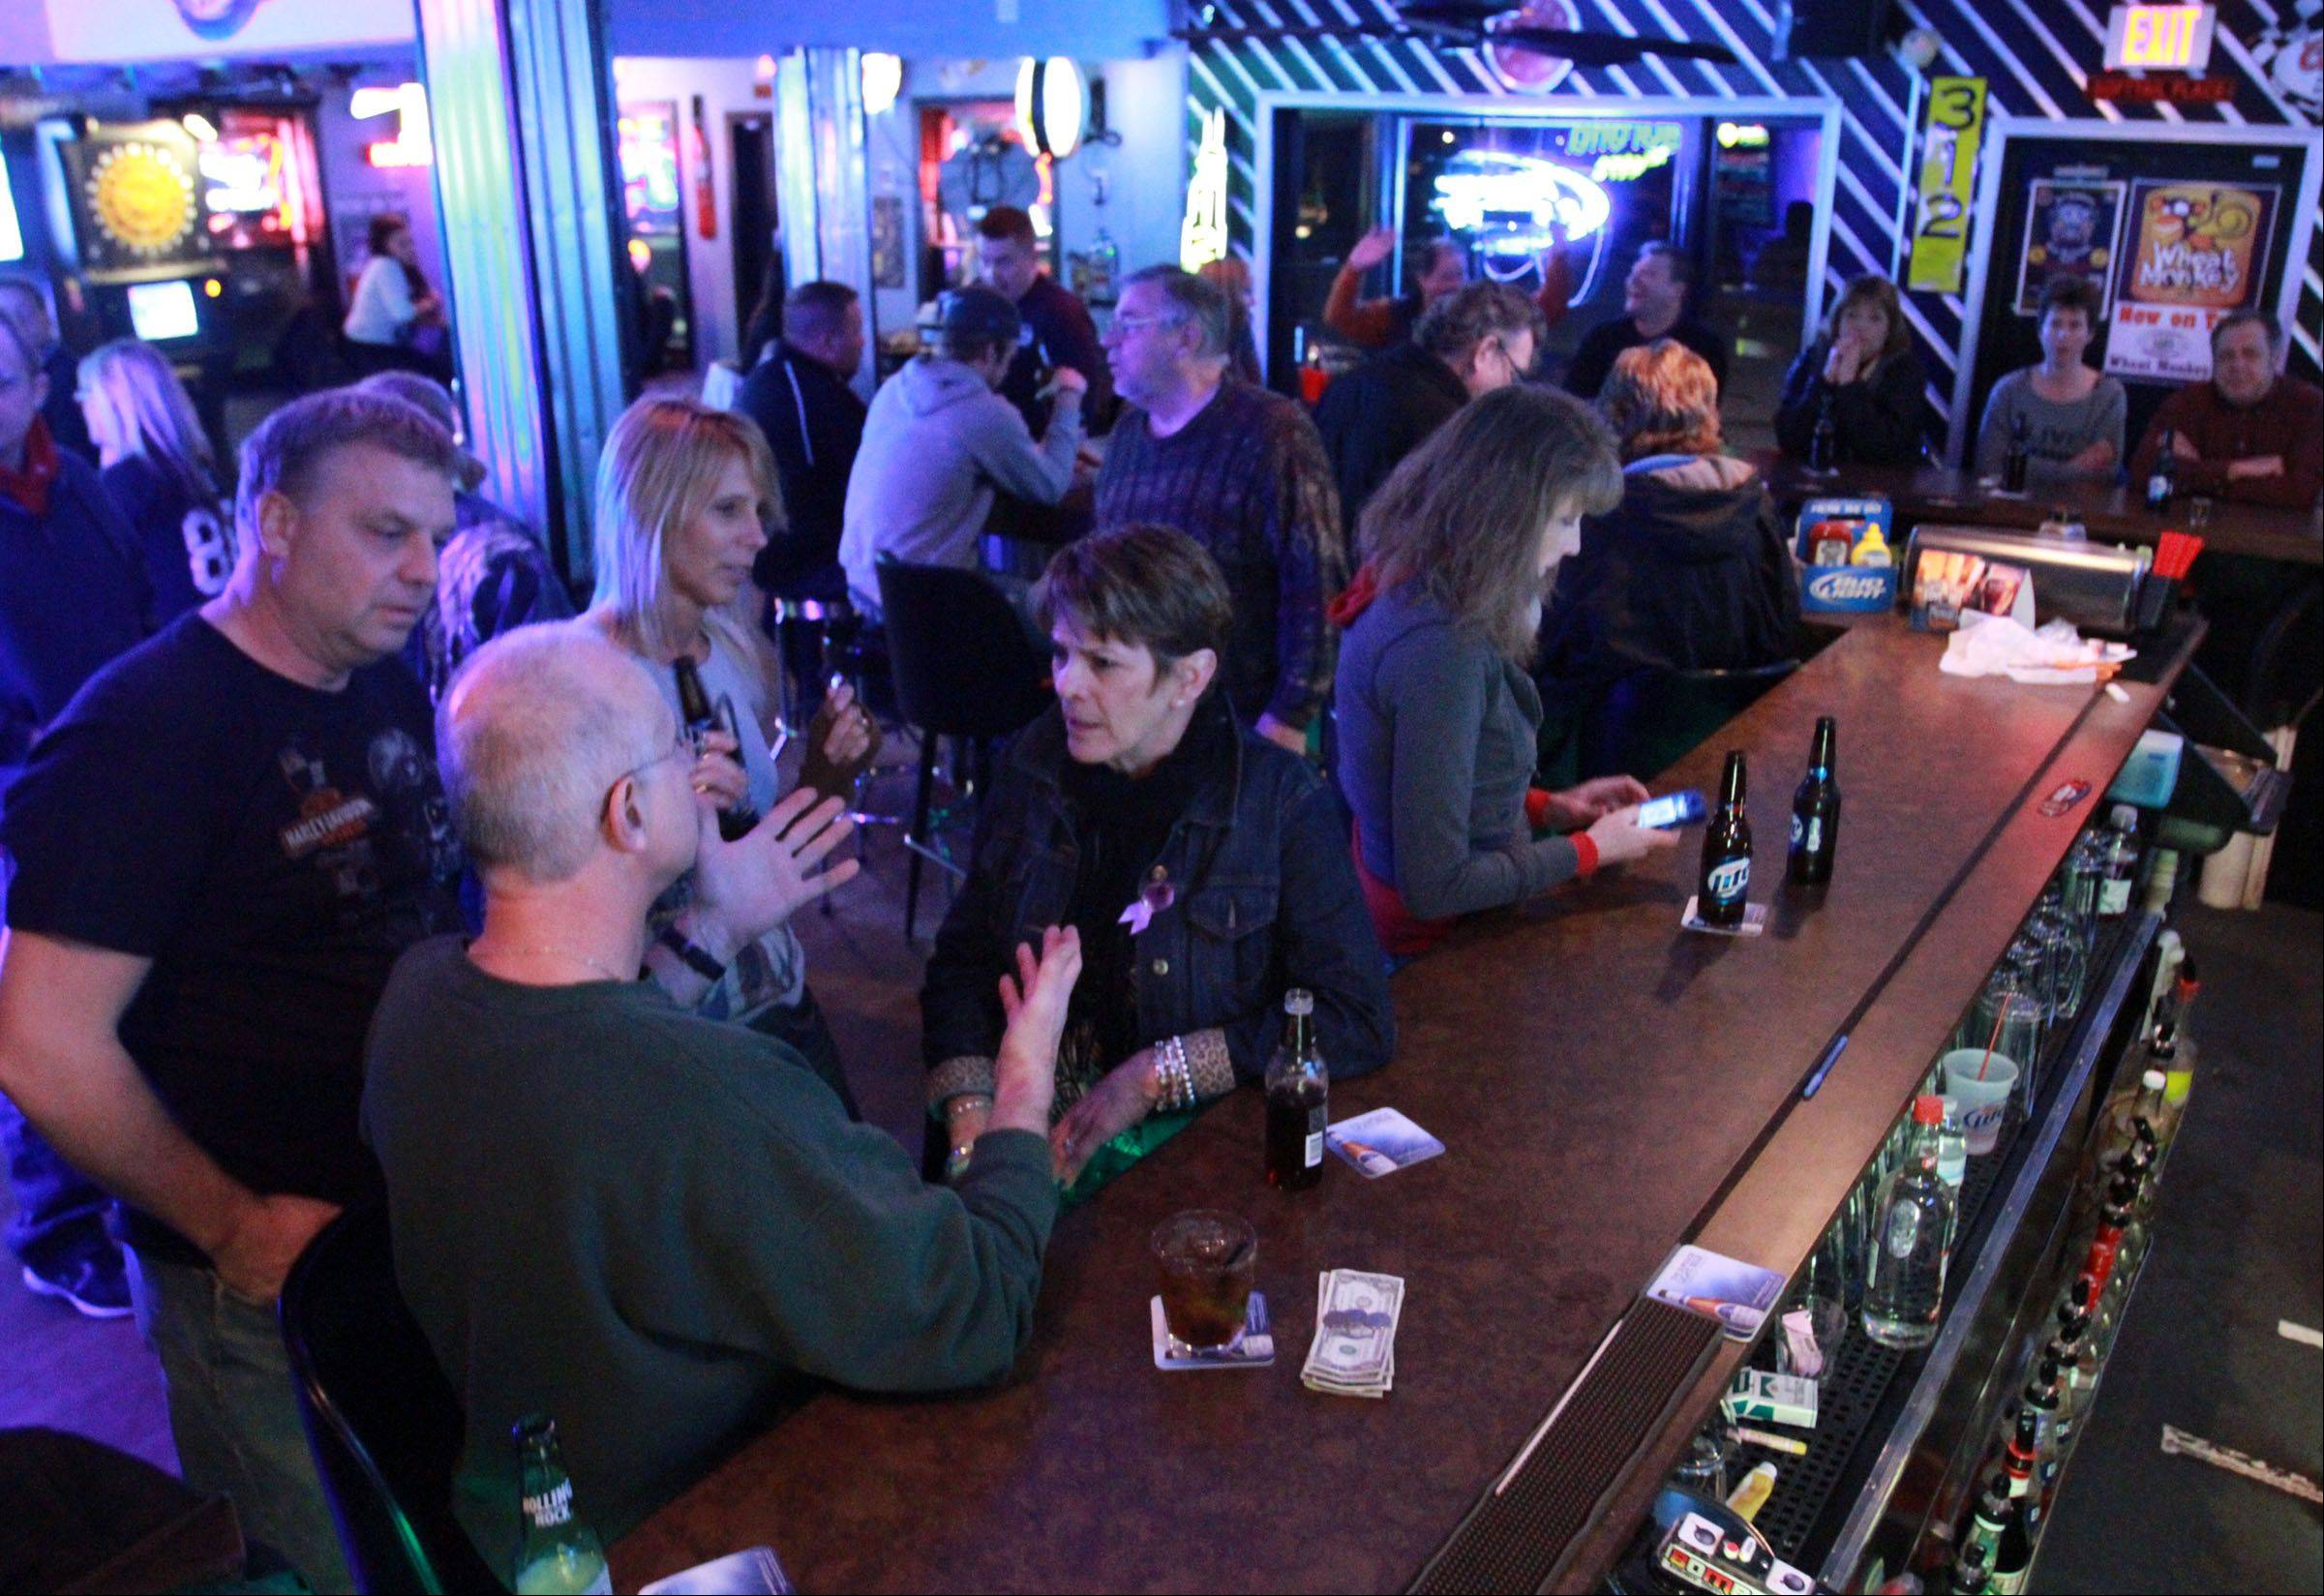 Route 12 Bar & Grill in Fox Lake draws a mix of ages.